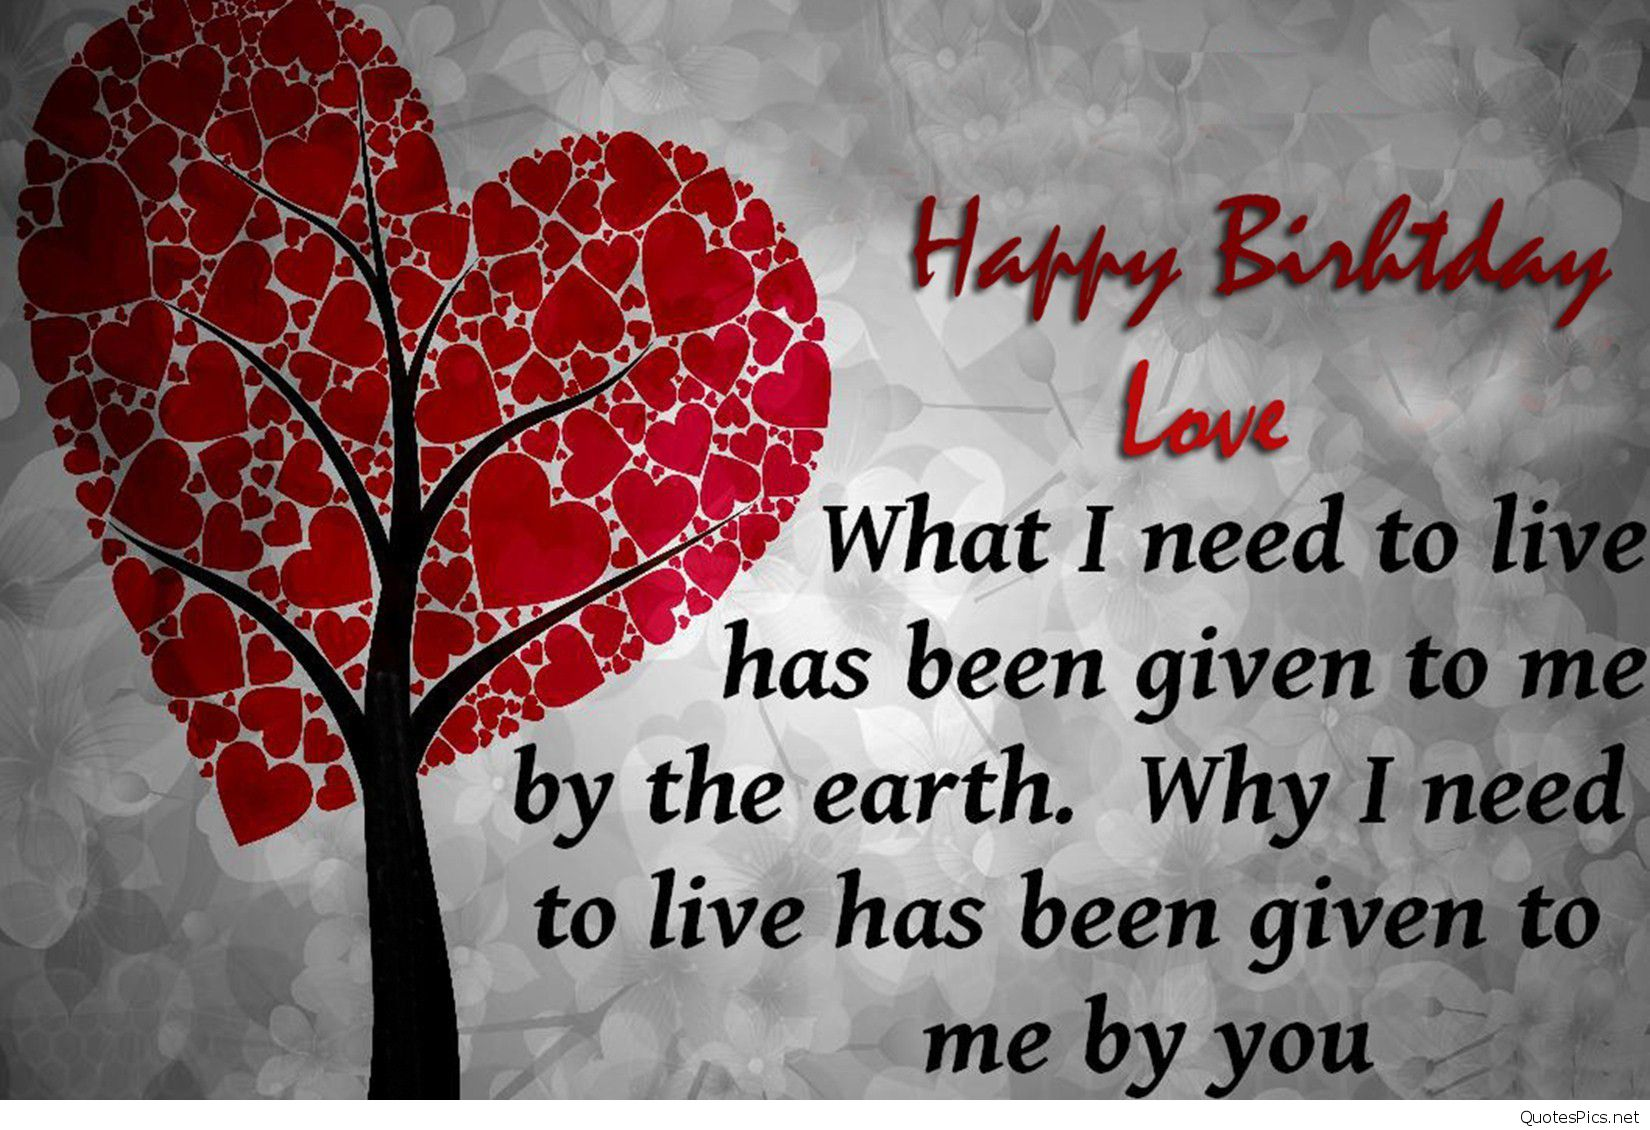 happy birthday my love quotes ; happy-birthday-my-love-quotes-hd-wallpapers